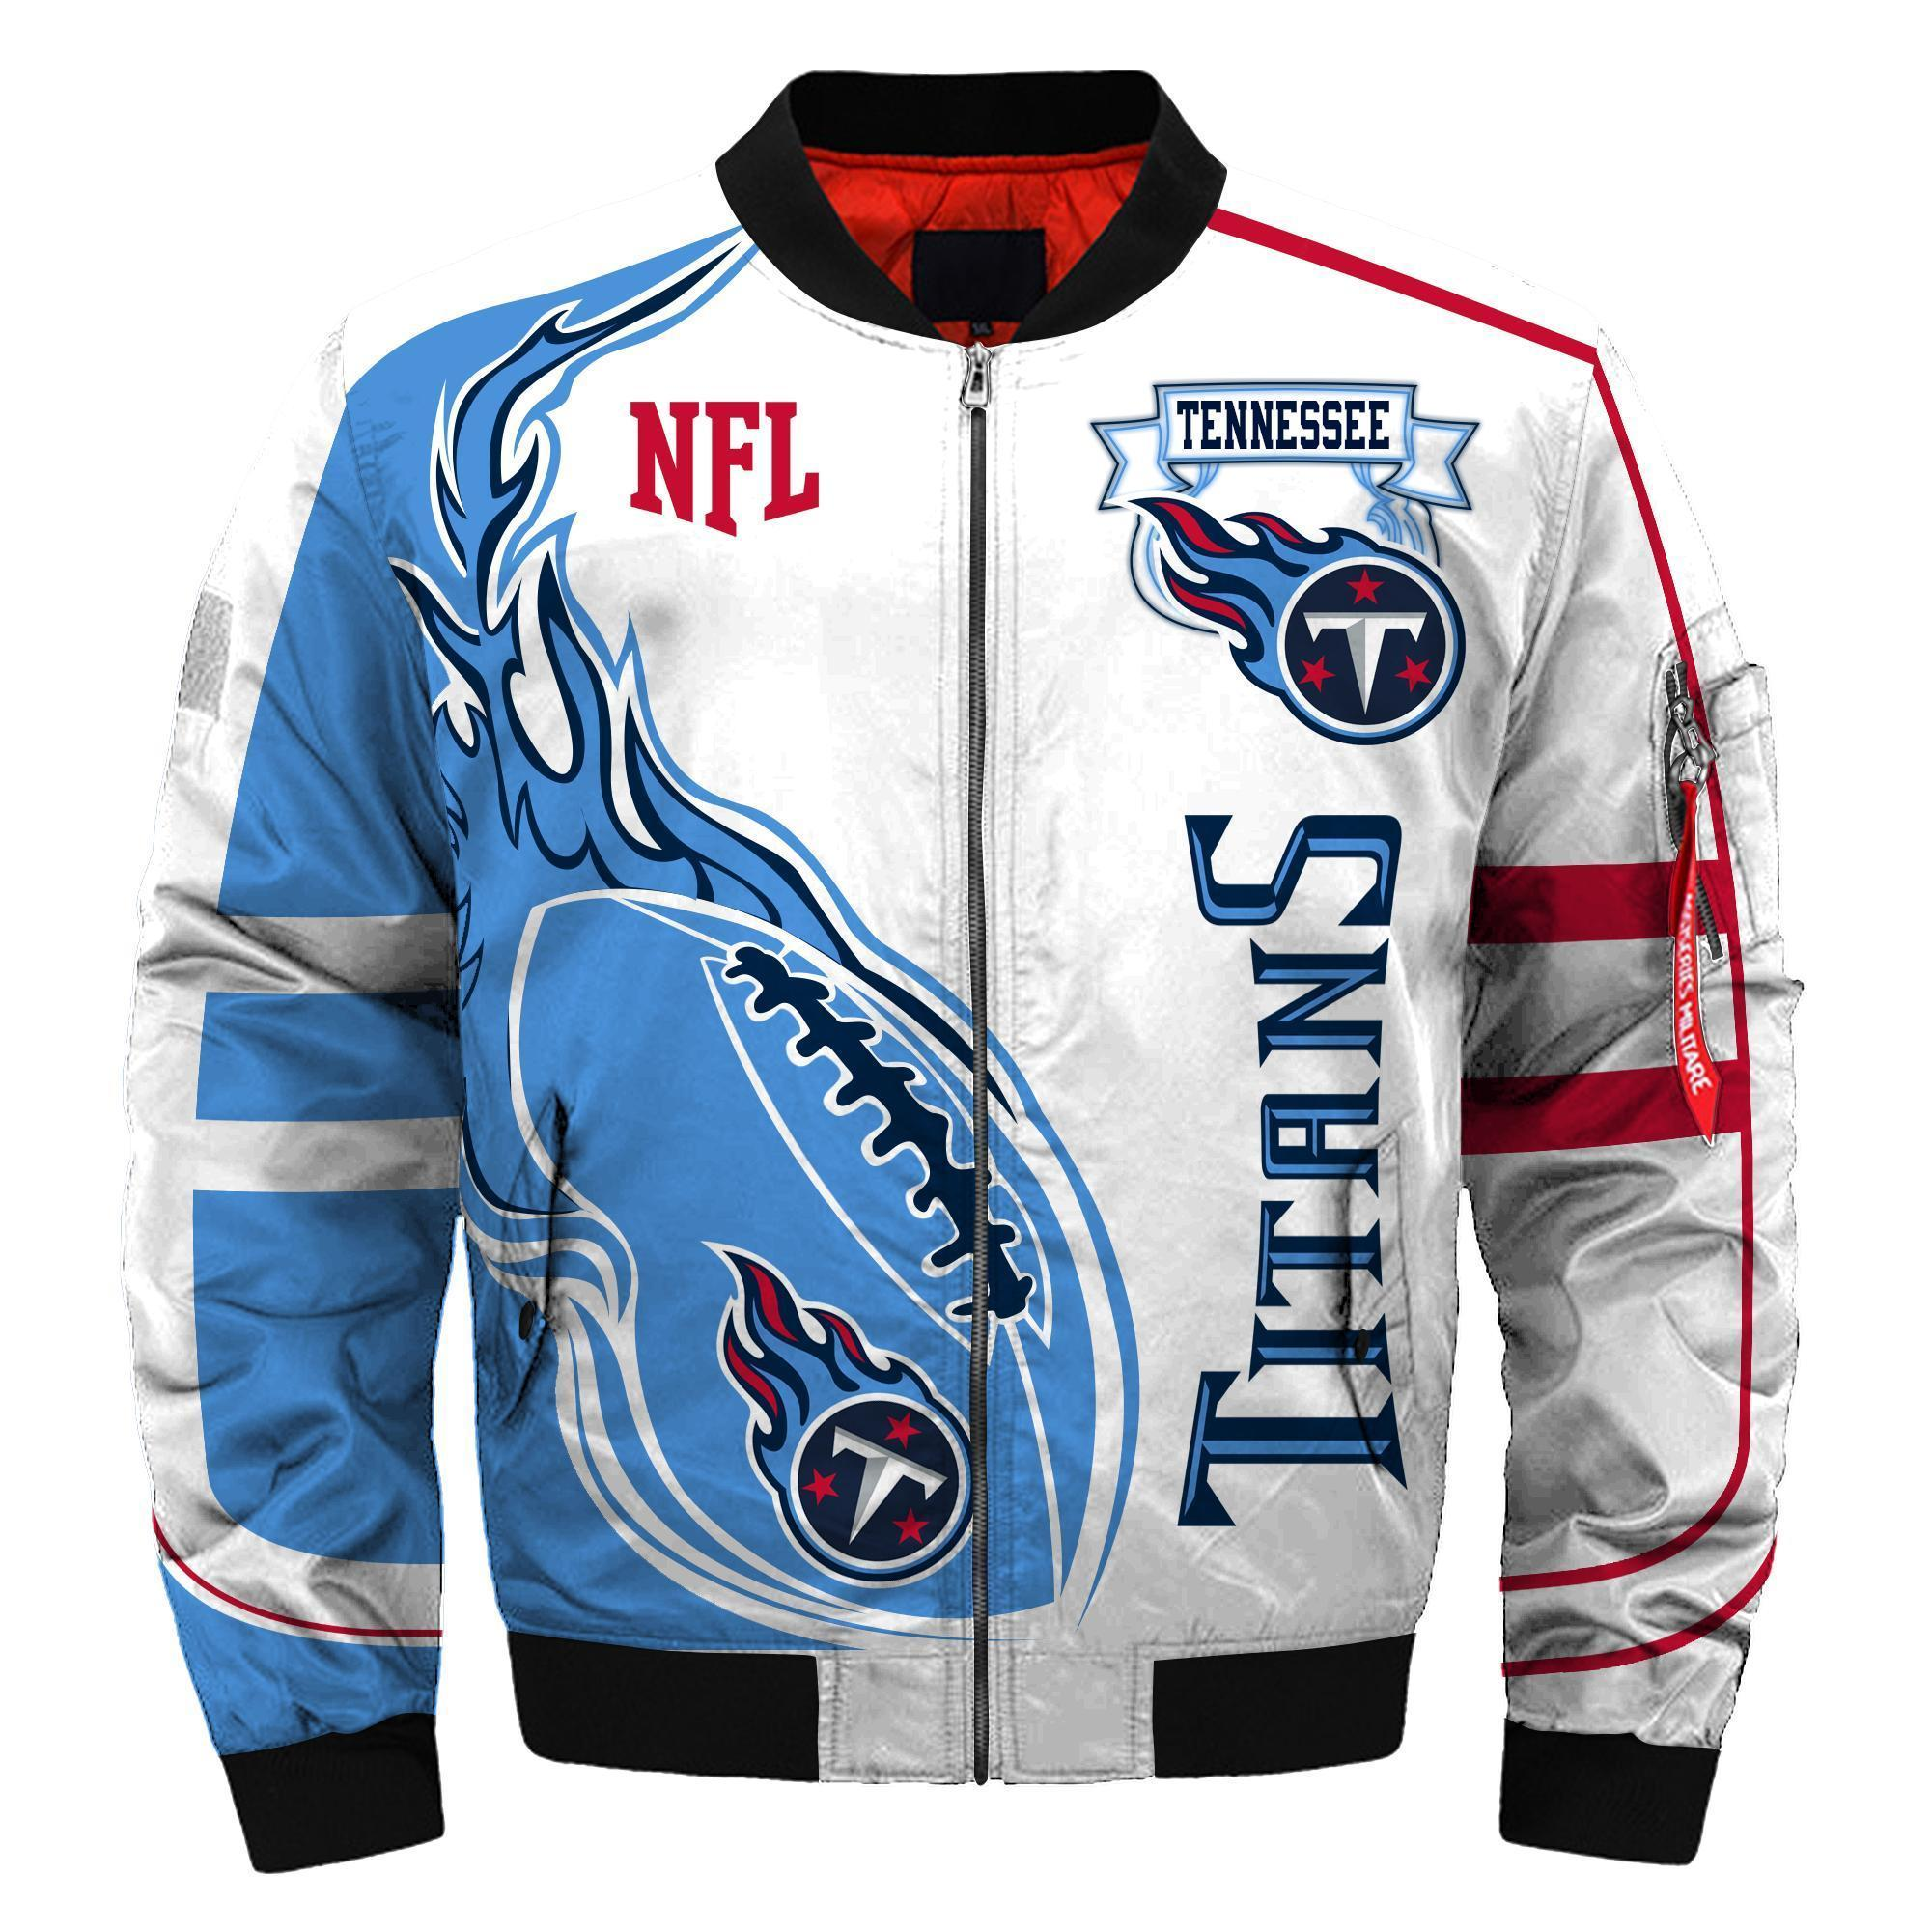 012 Nfl Tennessee Titans Custom North Face Winter Jacket Bomer High Quality Plus Size Jacket